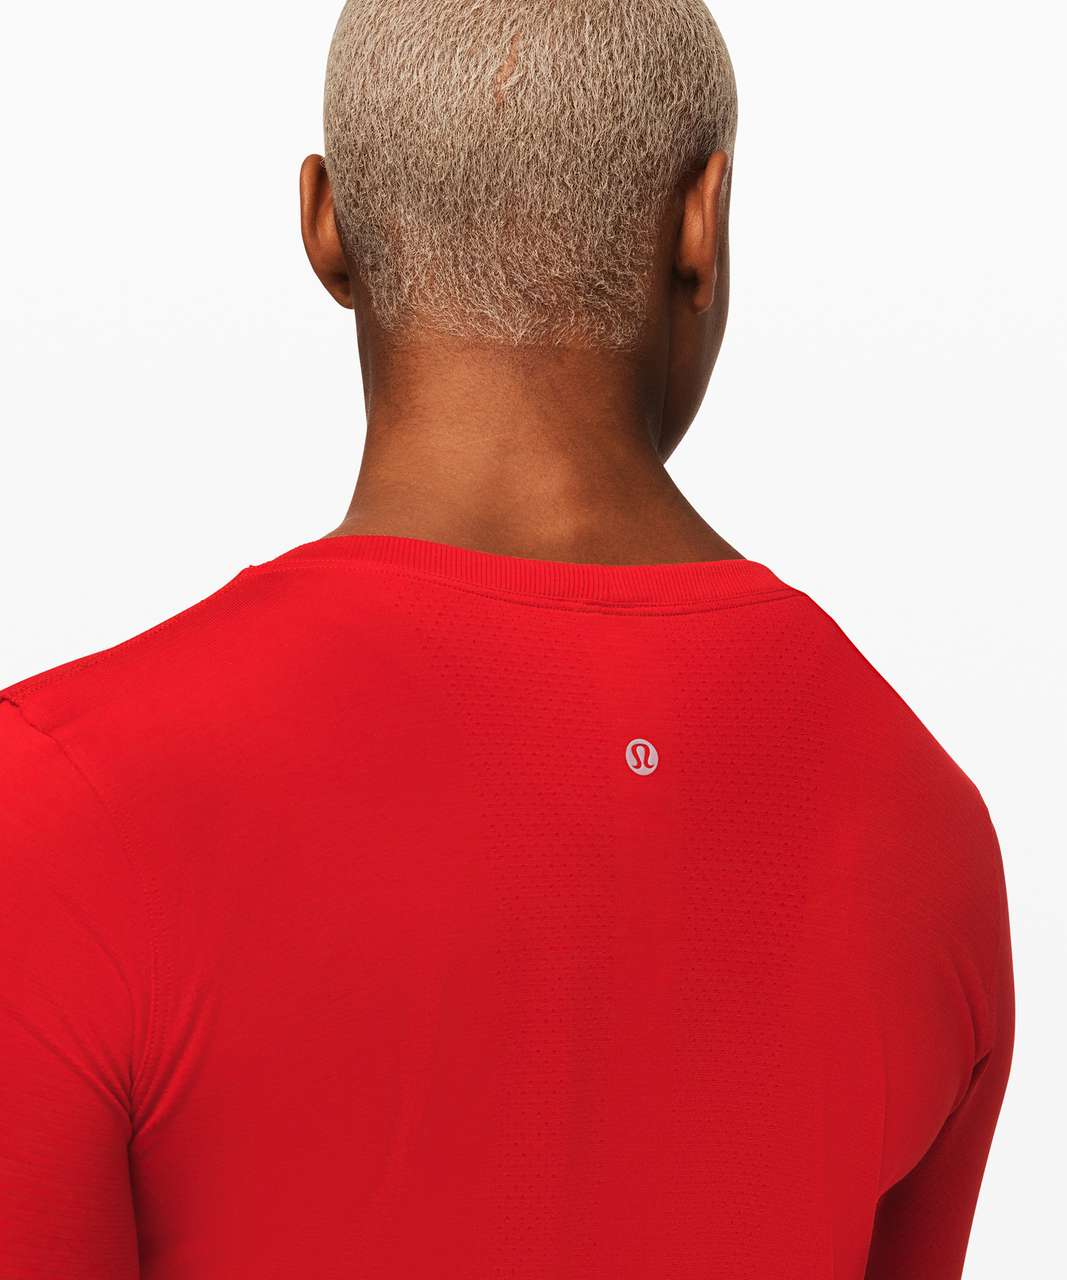 Lululemon Swiftly Relaxed Long Sleeve - Dark Red / Dark Red